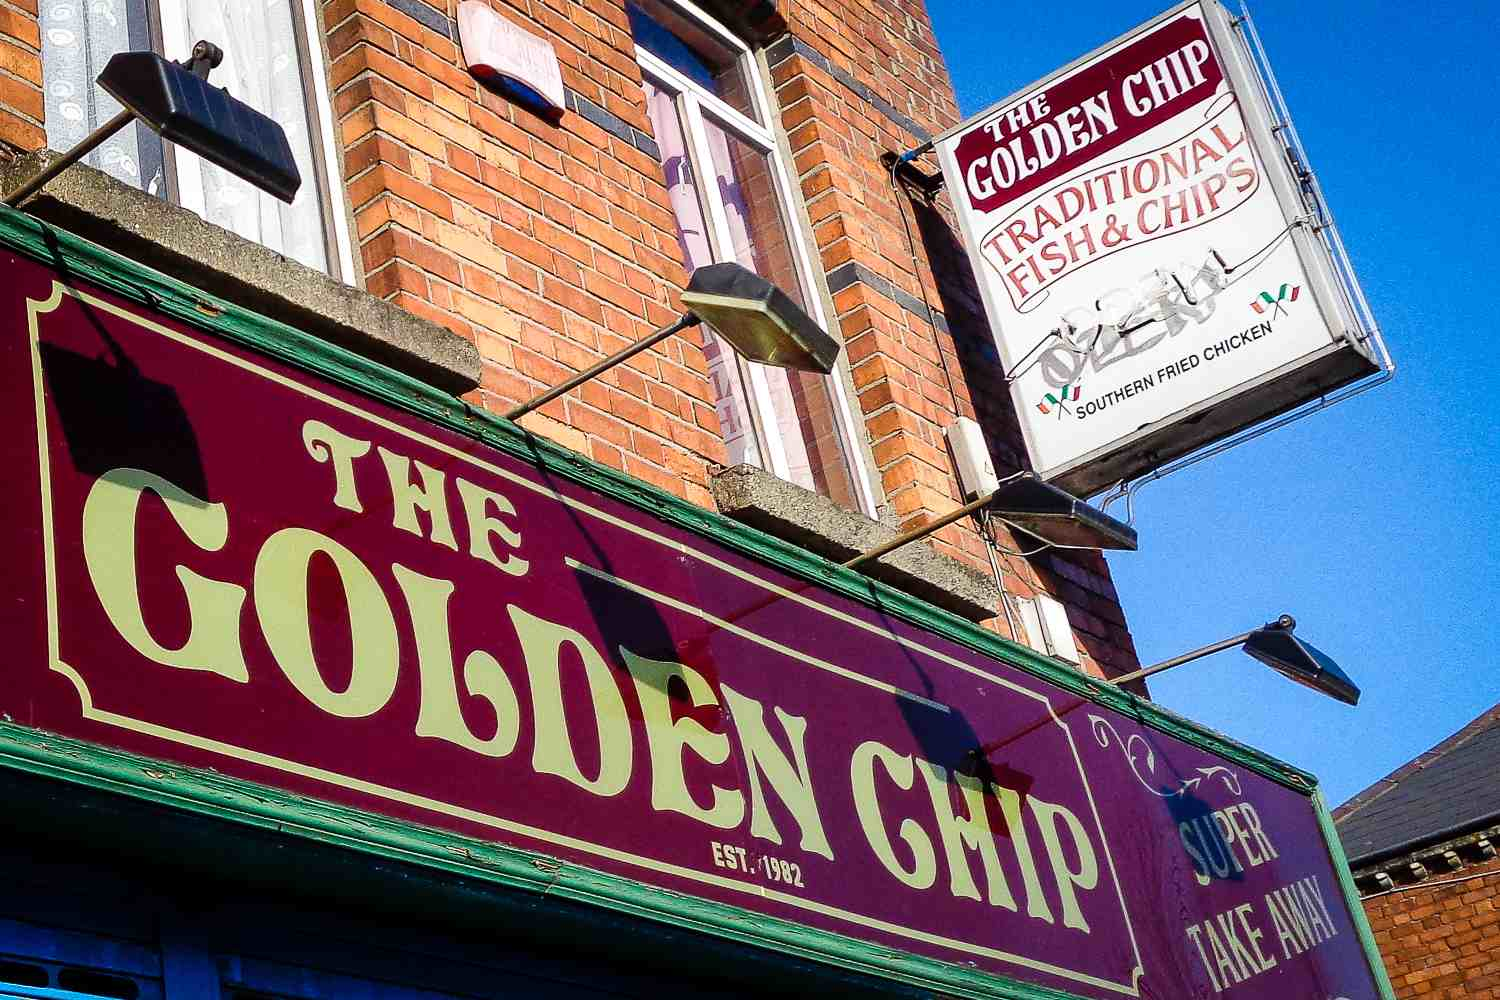 Fish & Chips, Old School - that's the Golden Chip